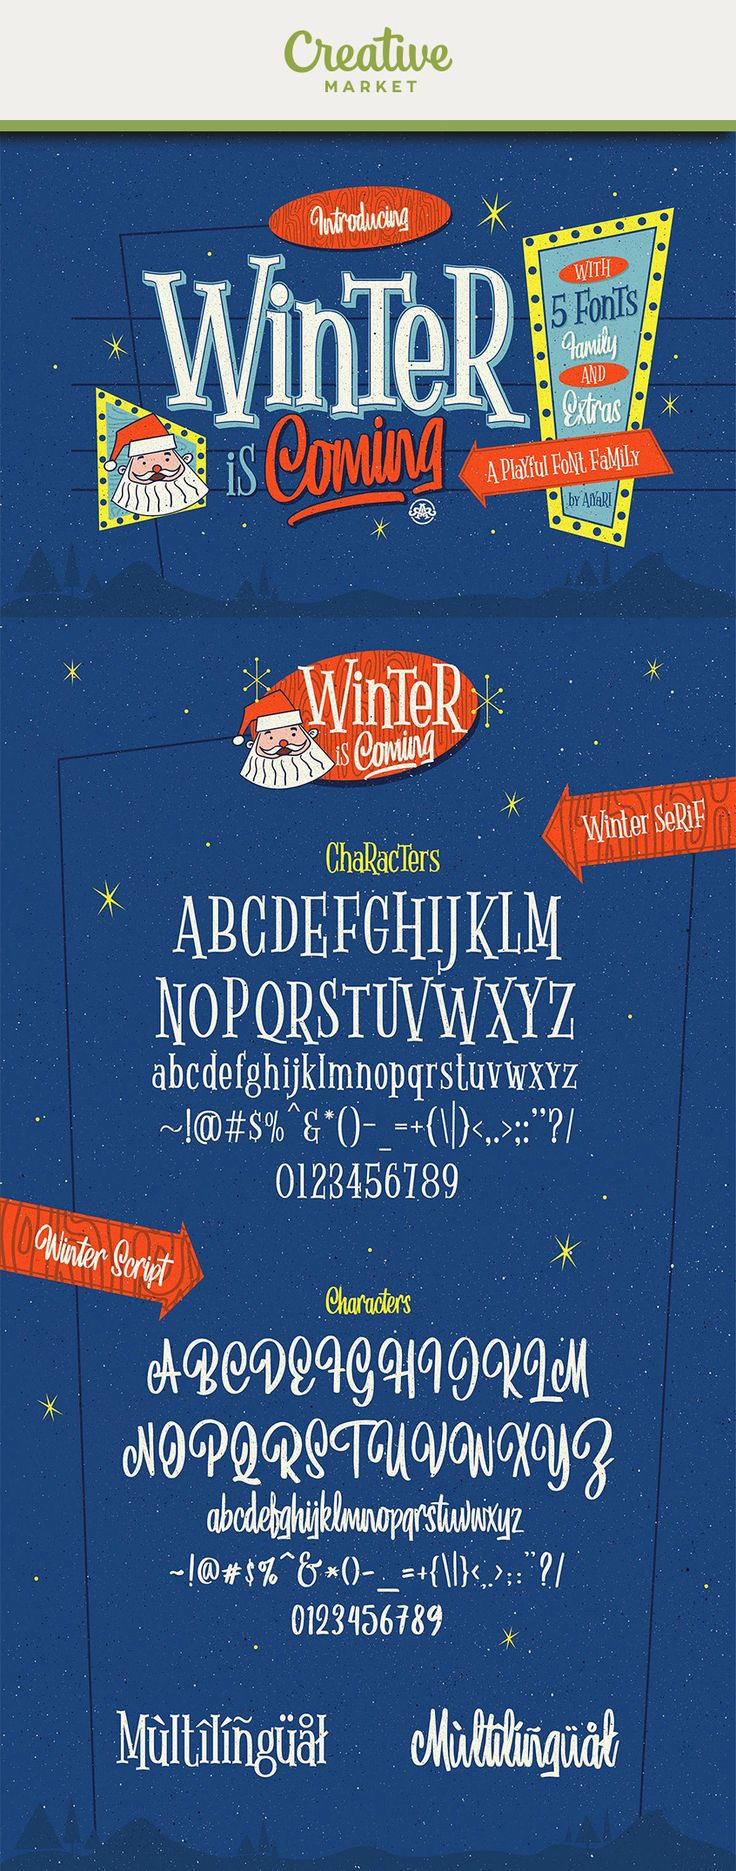 Ad: Winter is comingis a new playful font family which is inspired by hand lettering at the winter season in 1950-1960.Winter is comingcontains 5 collection of fonts that used open type features such as stylistic alternate, stylistic set, contextual alternate, ornaments and ligatures. This package also contains a bonus graphic to help you make winter design more stunning!